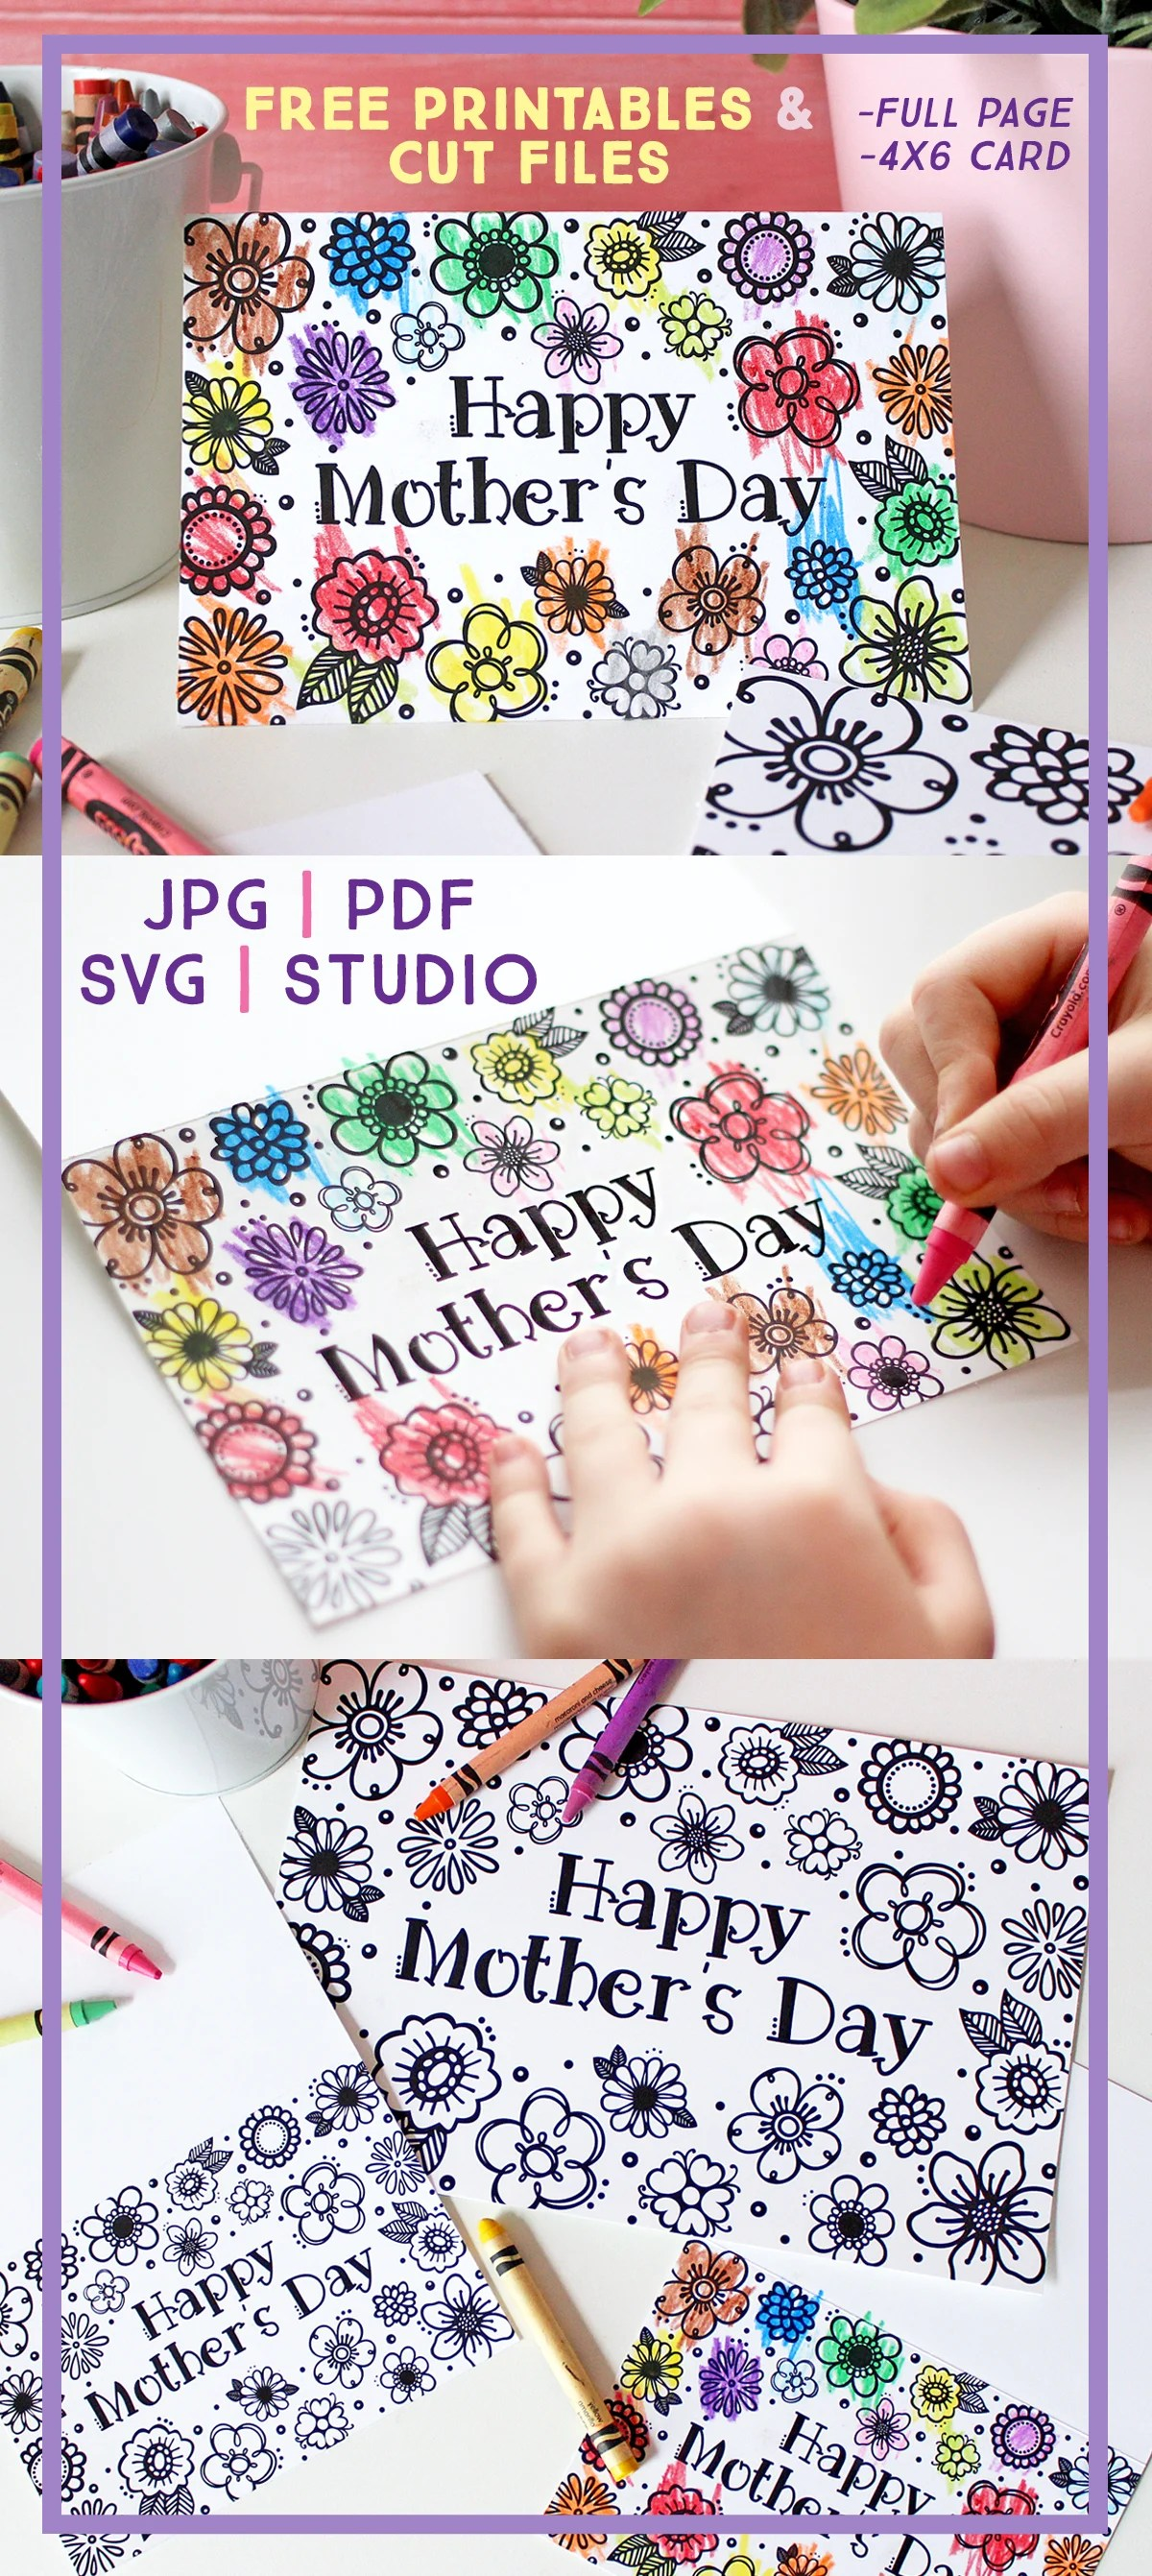 This is a photo of Free Printable Coloring Mothers Day Cards intended for color pdf